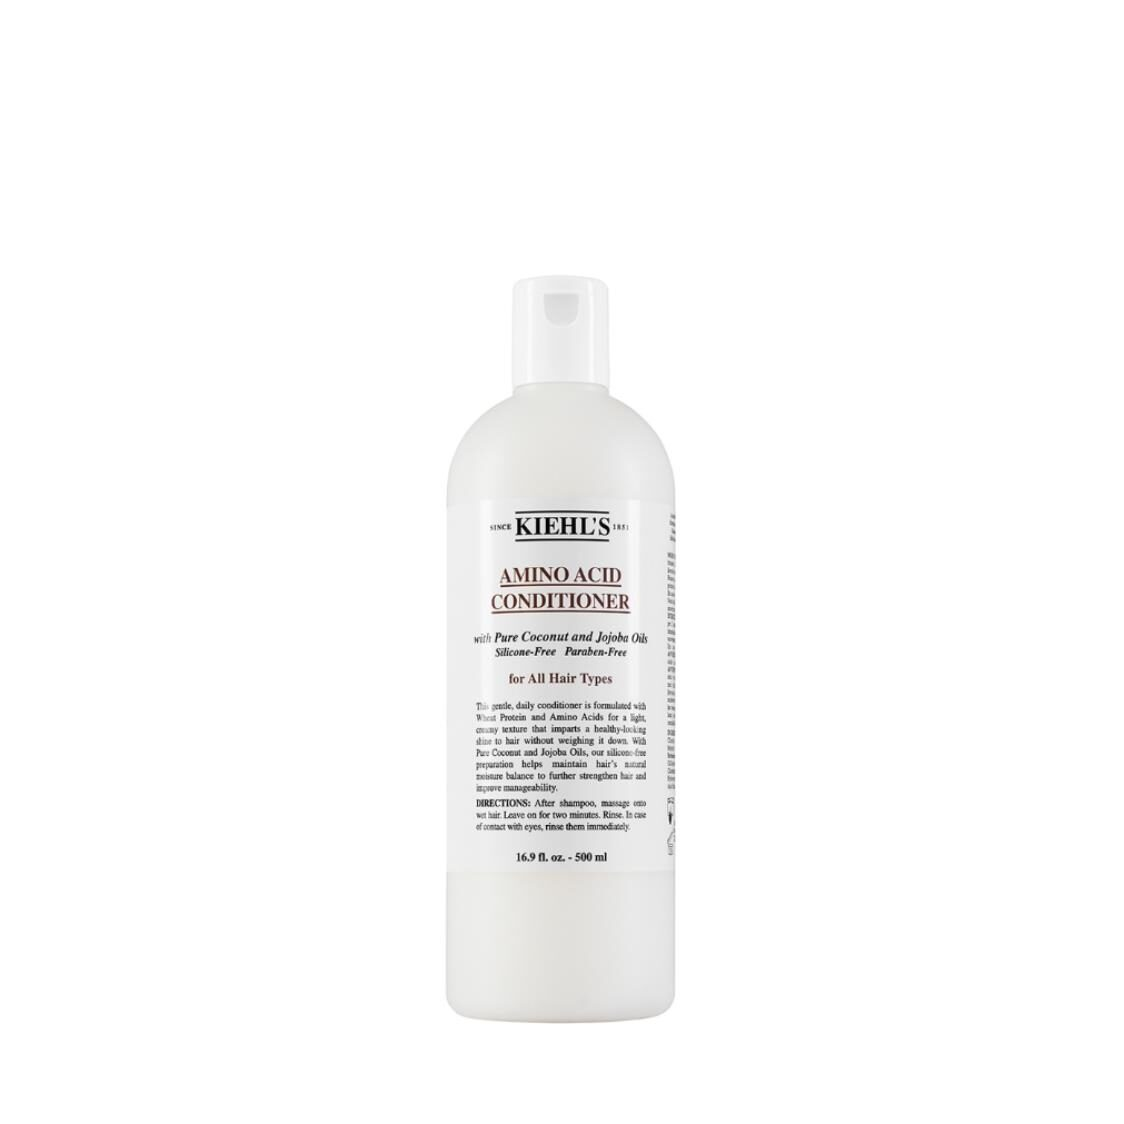 Kiehls Since 1851 Amino Acid Conditioner 500ml